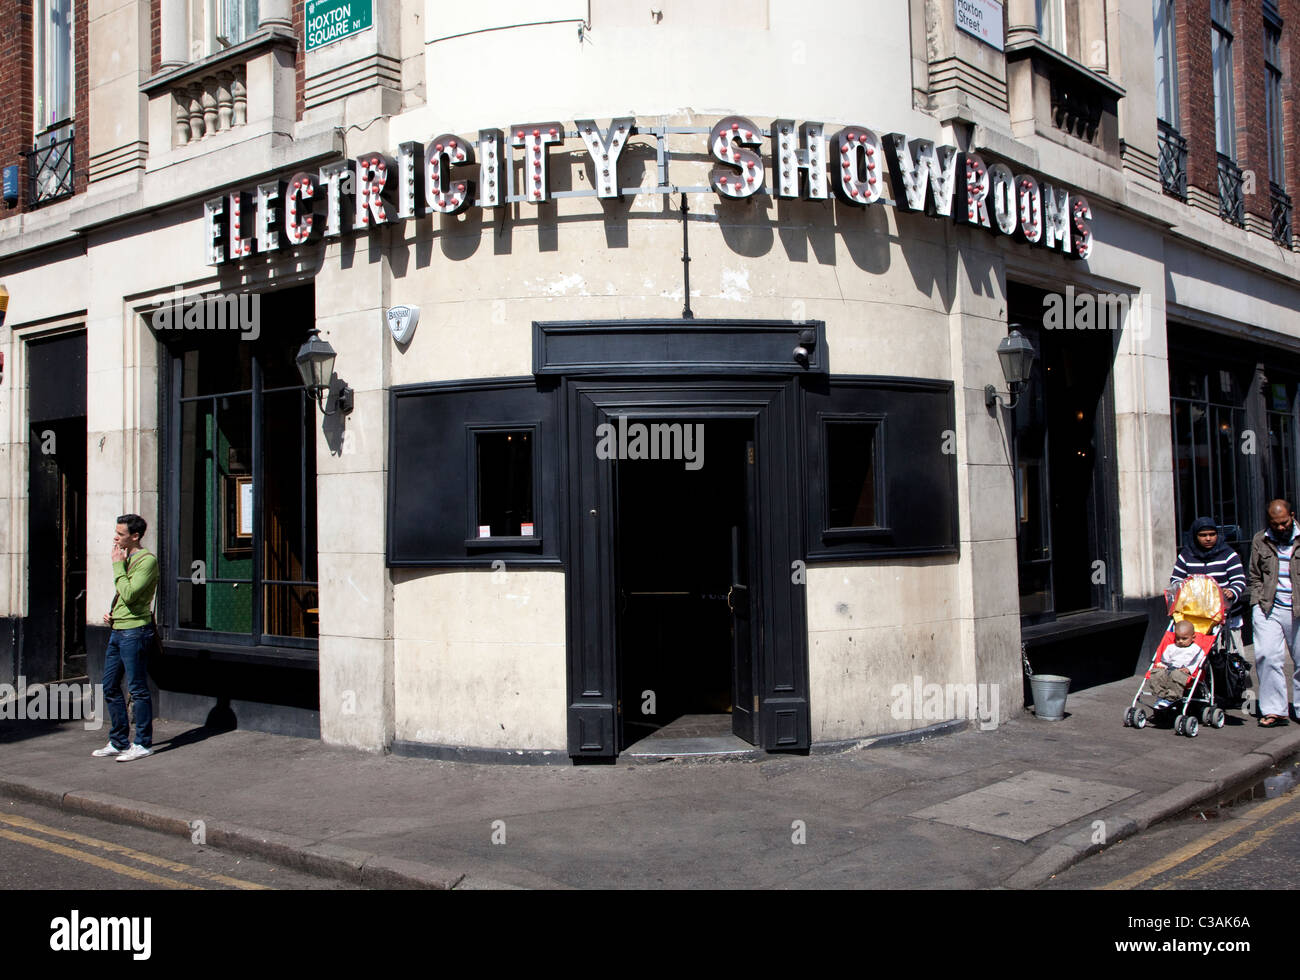 Electricity Showrooms restaurant & bar, Hoxton Square, London - Stock Image